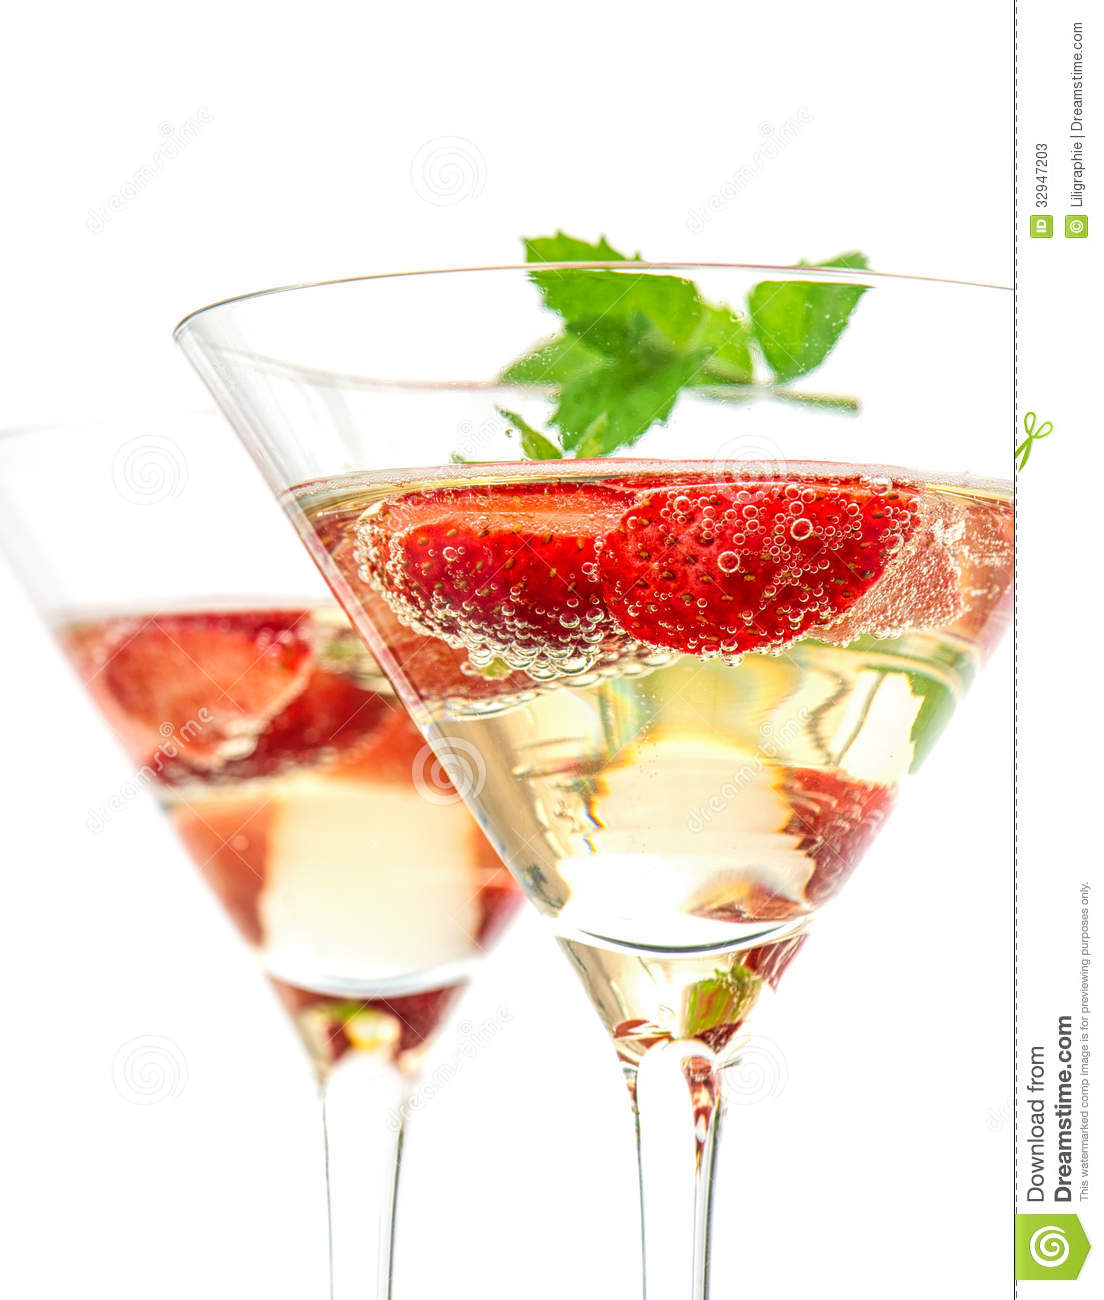 Strawberry Cocktail With Berry In Martini Glass Stock Photos - Image ...